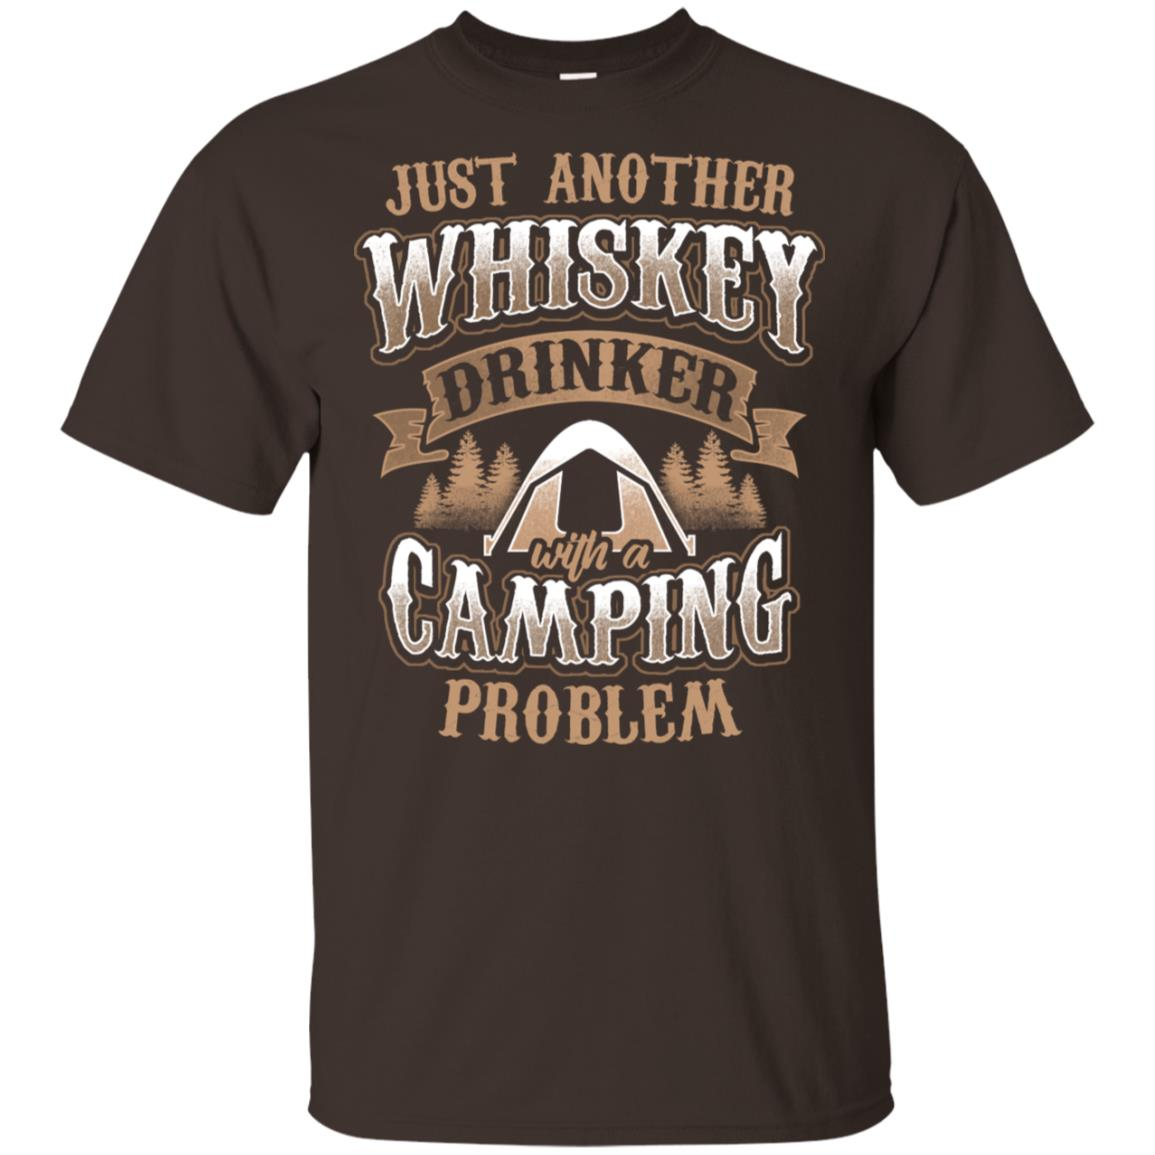 Whiskey Drinker With A Camping Problem Funny Gift Ls Unisex Short Sleeve